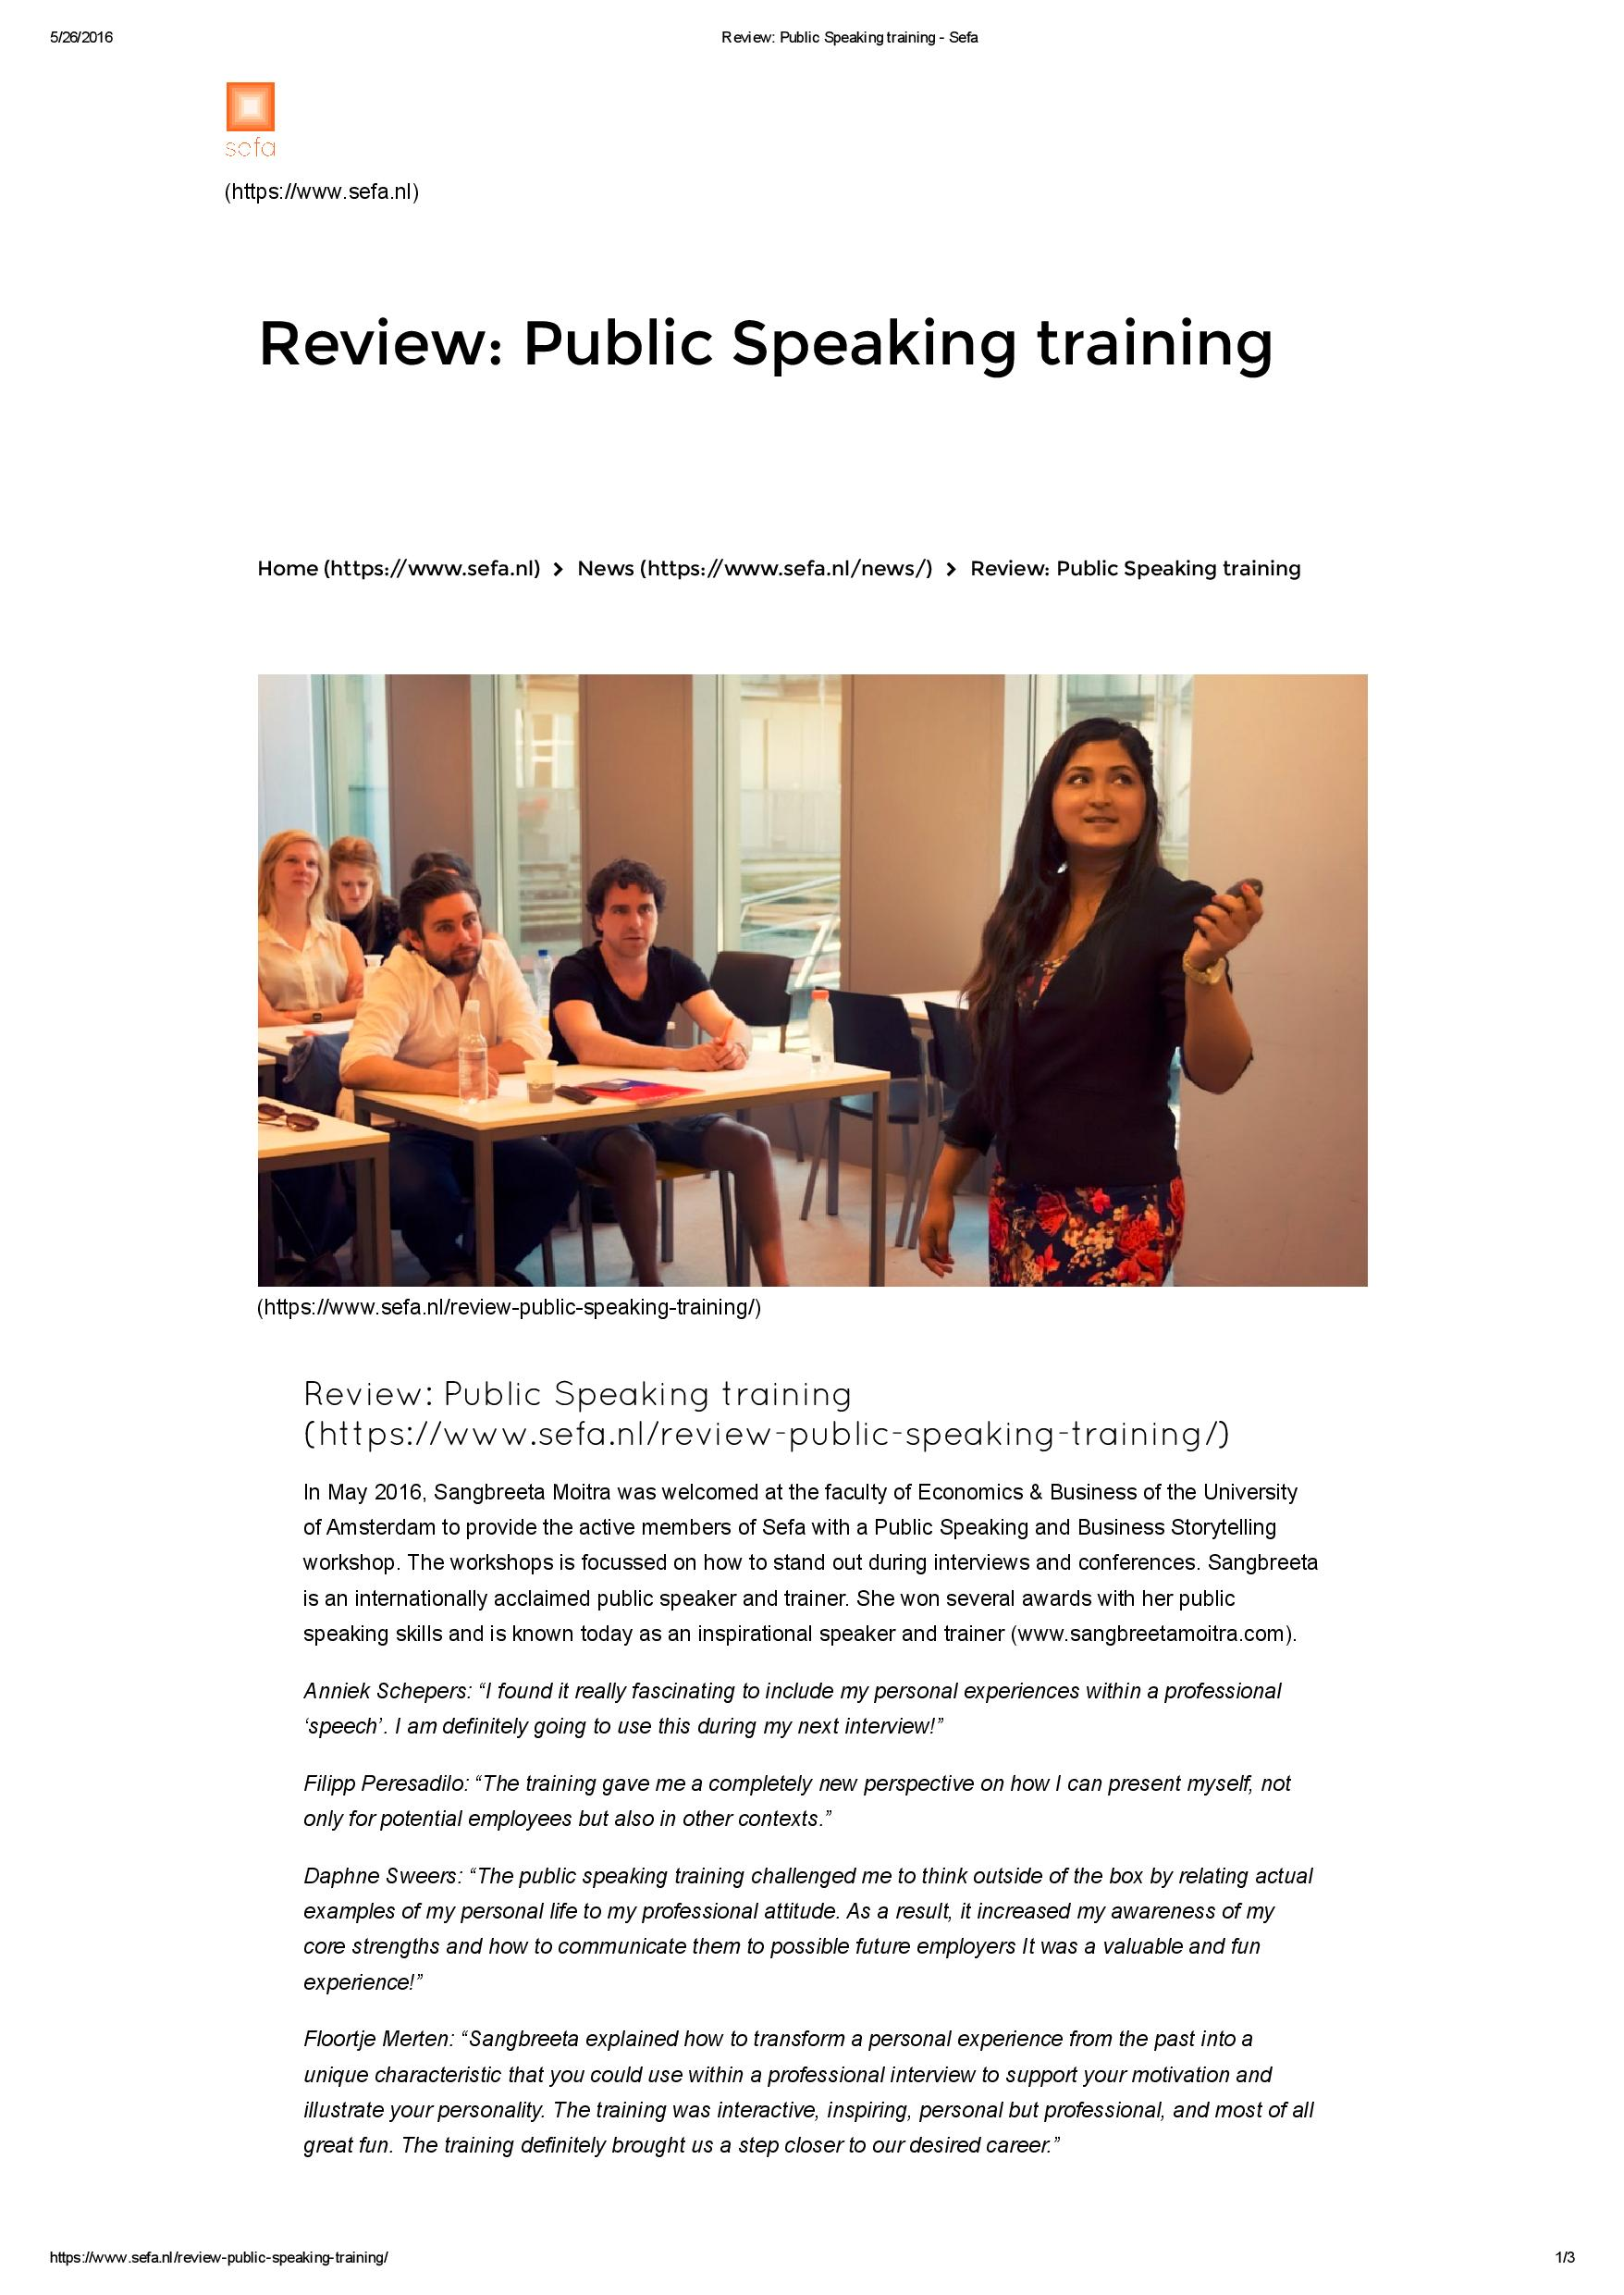 review public speaking training sefa page 001 jpg guest speaker on public speaking business storytelling university of amsterdam